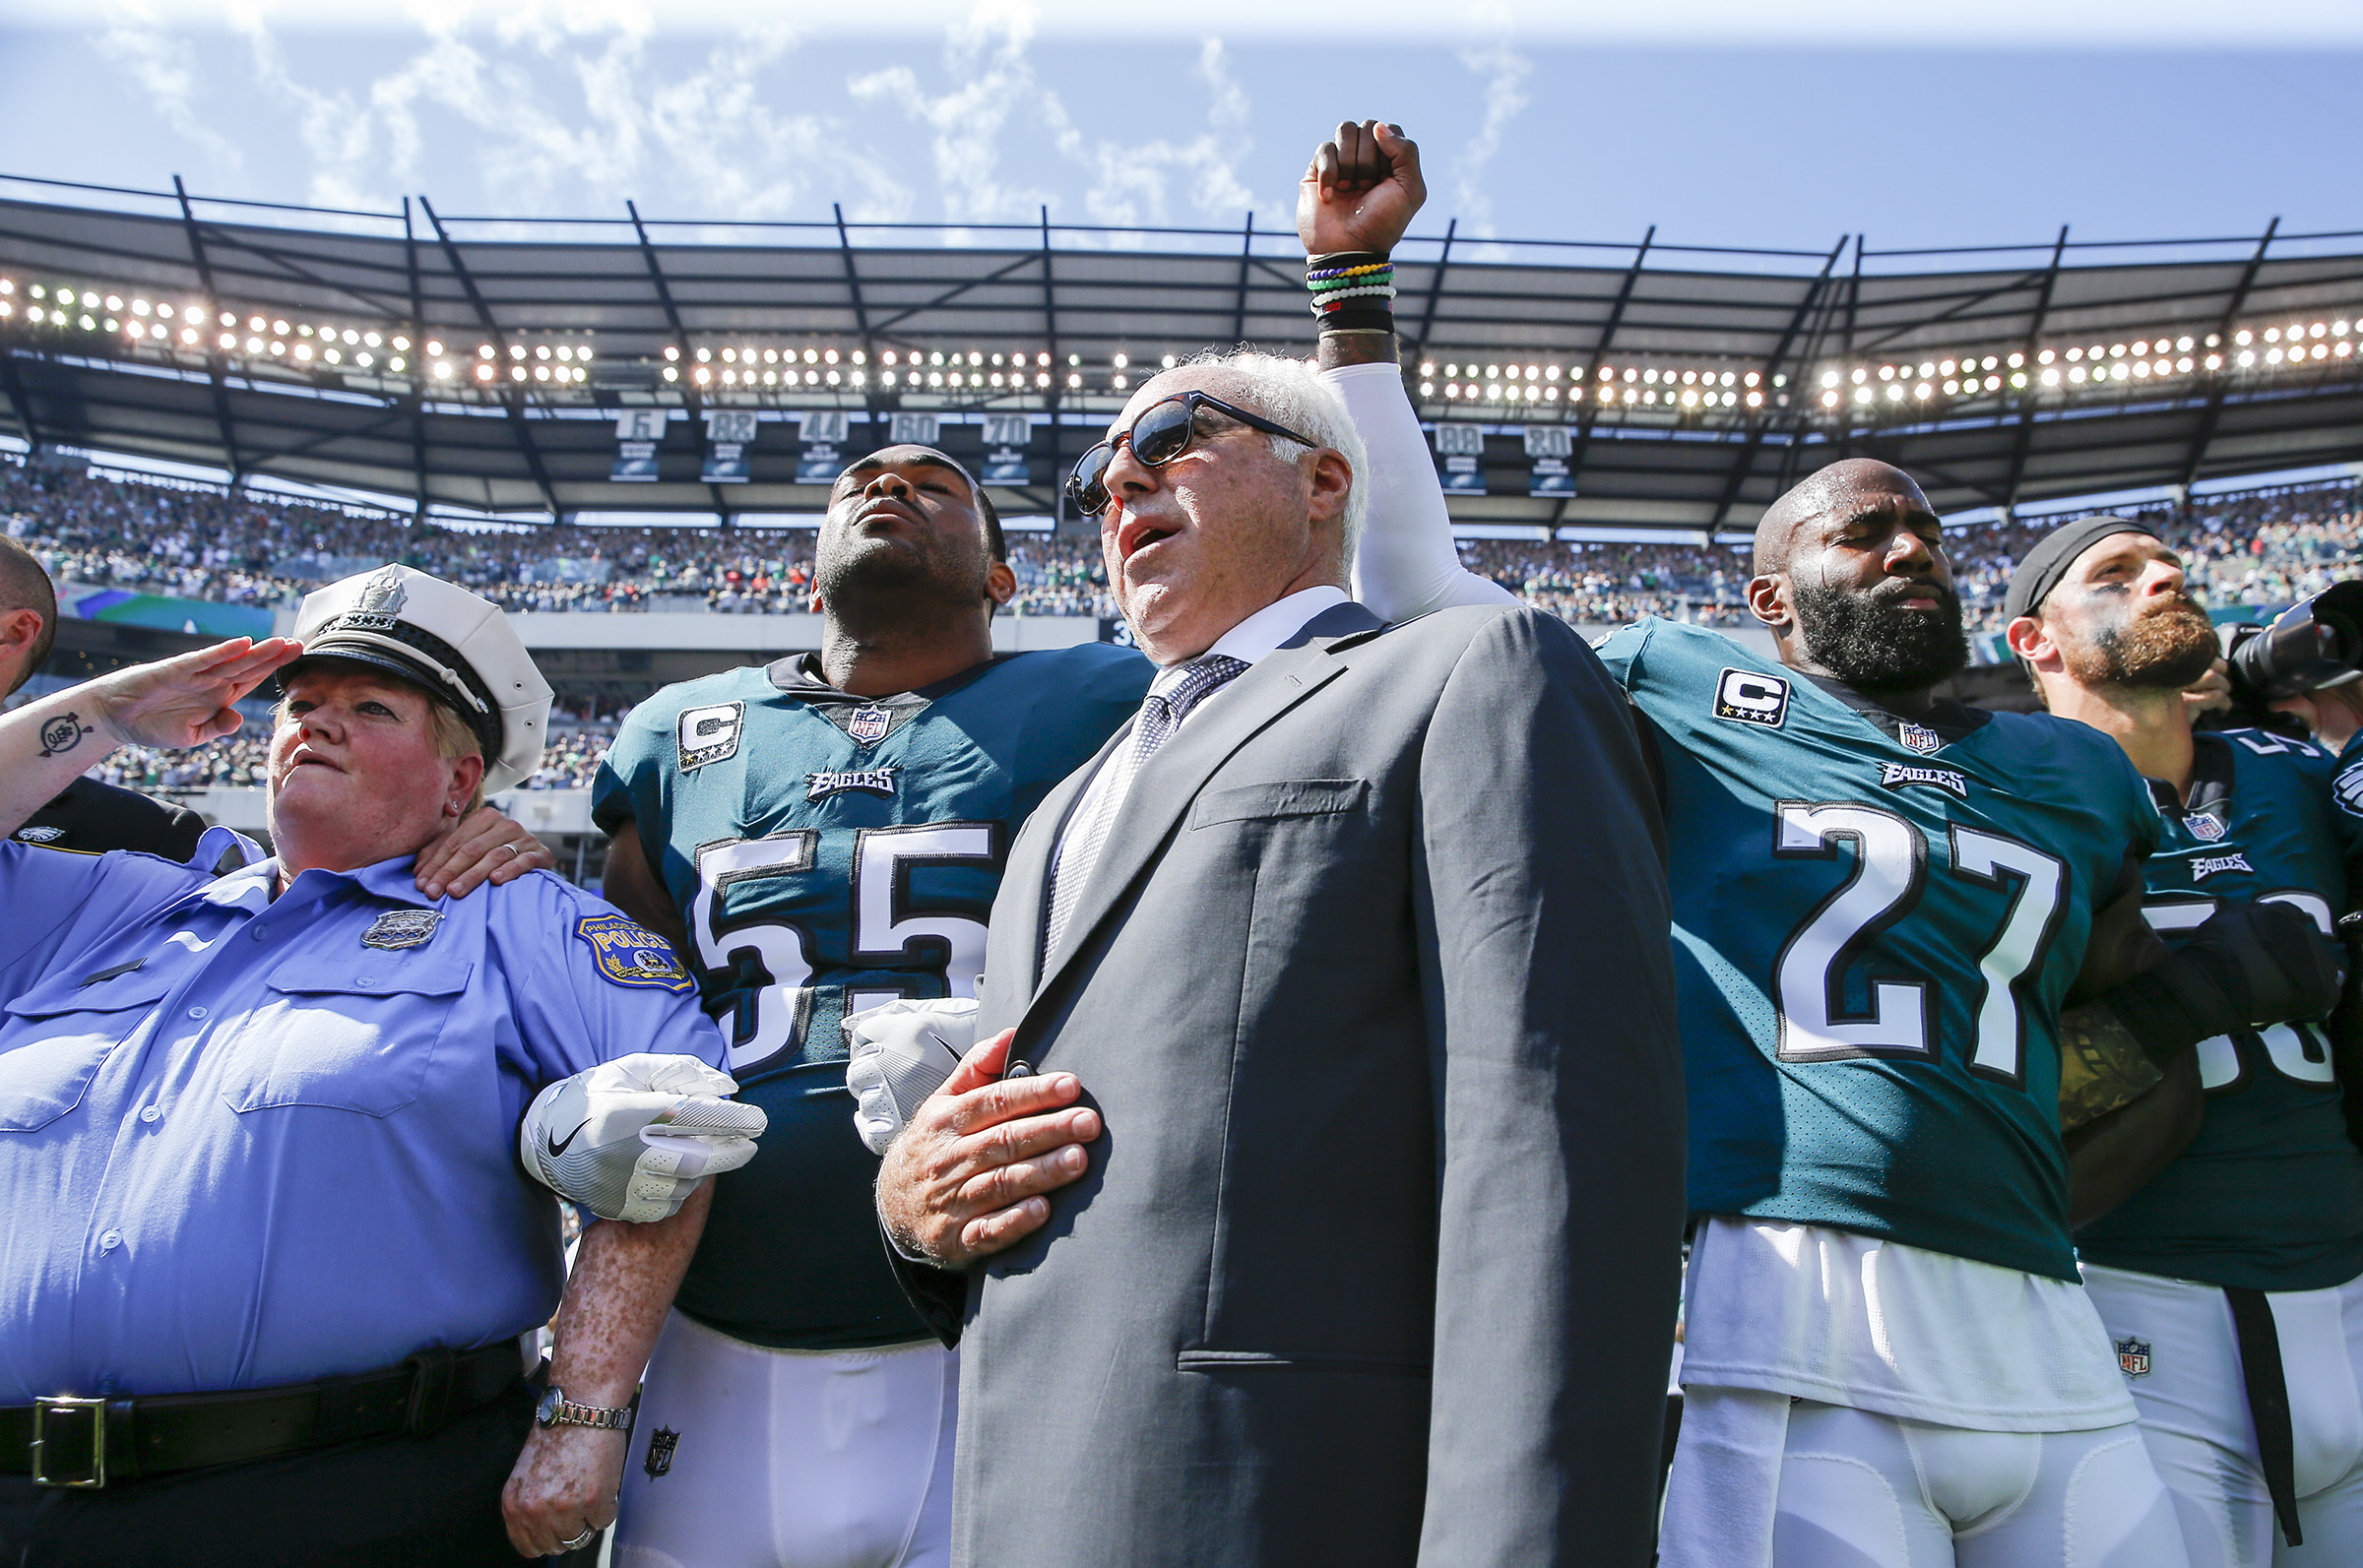 Eagles owner Jeffrey Lurie stands with Eagles defensive end Brandon Graham and strong safety Malcolm Jenkins during the National Anthem. Lurie has been a critic of President Trump.